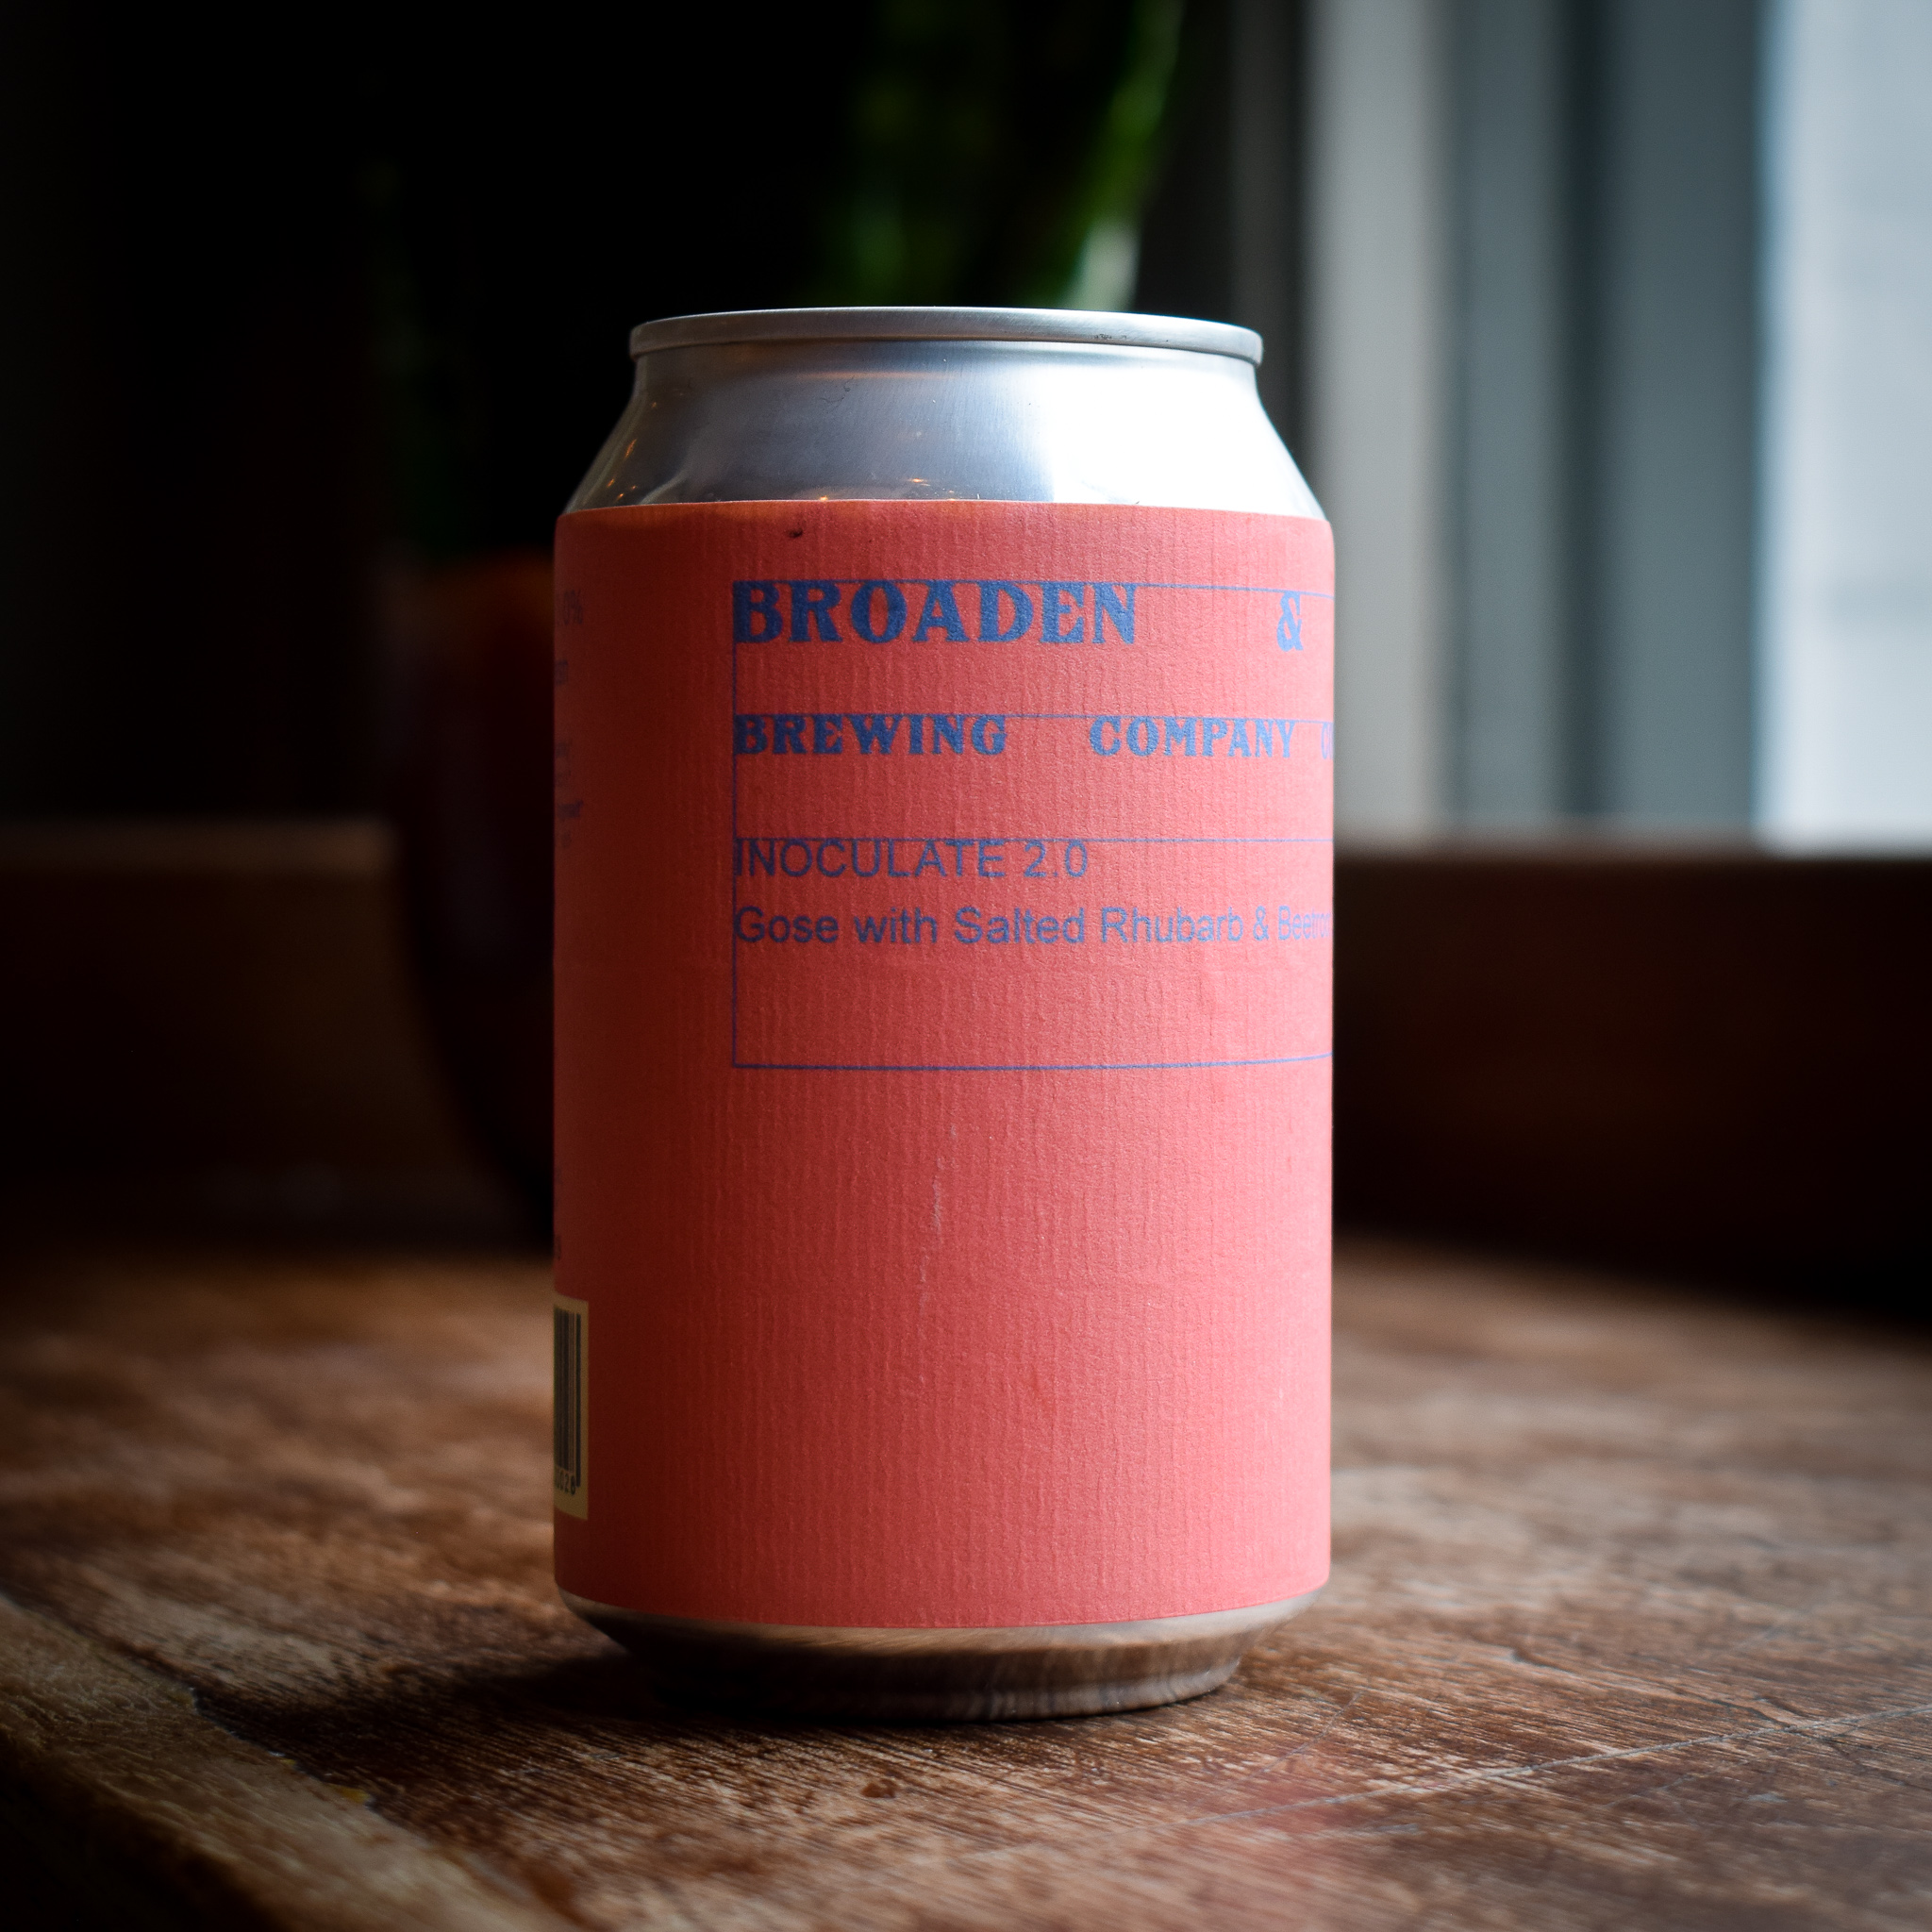 Alex's beer of the month - Broaden & Build 'Inoculate' 3% 330ml canGose with salted rhubarb and beetroot. Earthy, slightly sweet/sour, with the rhubarb pulling it all together. Gose is a very traditional German style of beer – kind of somewhere between a farmhouse ale and a sour beer, with a subtle saltiness (attributed to the water they used to use locally). Super-refreshing and a perfect summer sipper from our friends at Broaden & Build in Copenhagen, brewing beers with zero-waste in mind.